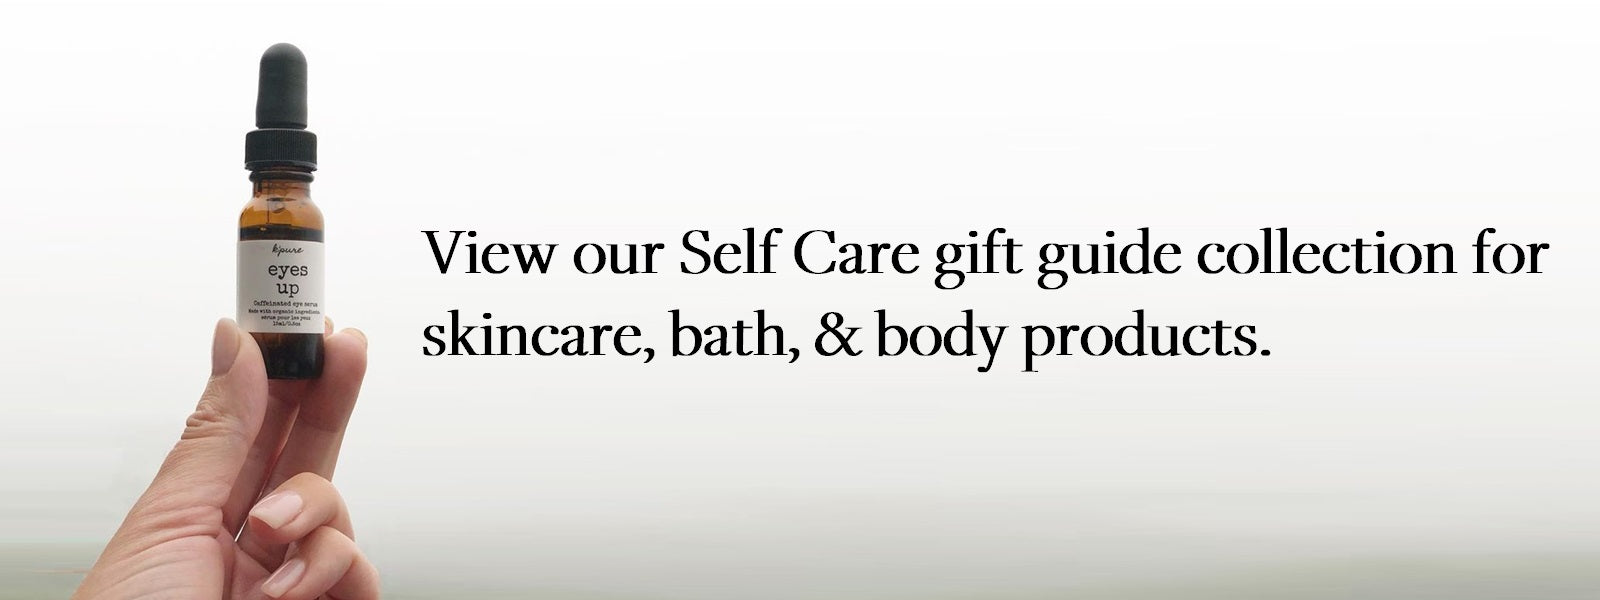 "<h4 style=""text-align: center;""><strong><a href=""https://carrymaternity.ca/collections/giving-self-care"" target=""_blank"" title=""Shop the Maternity &amp; Nursing Holiday Gift Guide 2019 